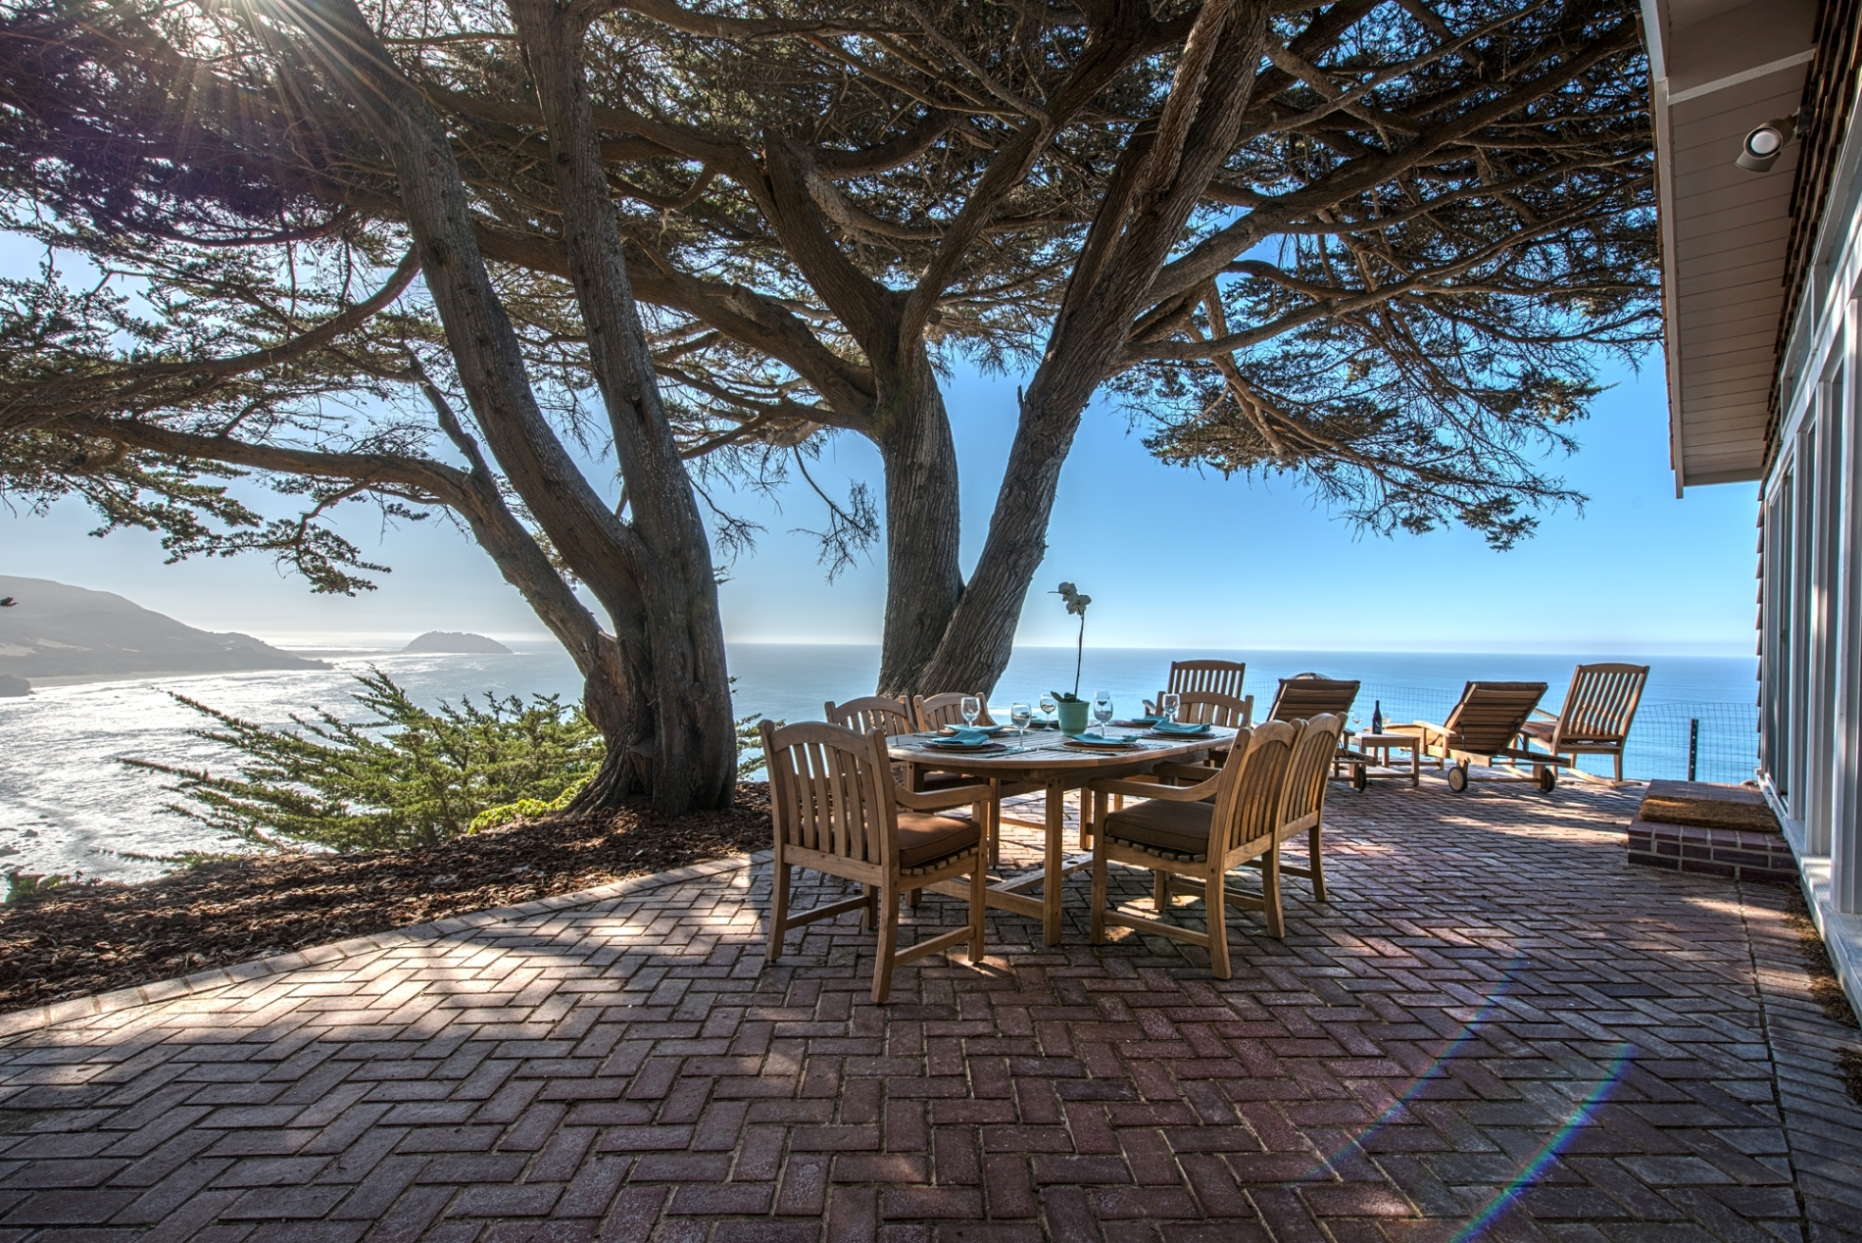 mpmrbb monterey travel from best for vrbo vacation images cottages destinations places holiday pinterest in com rental on rentals cottage rent